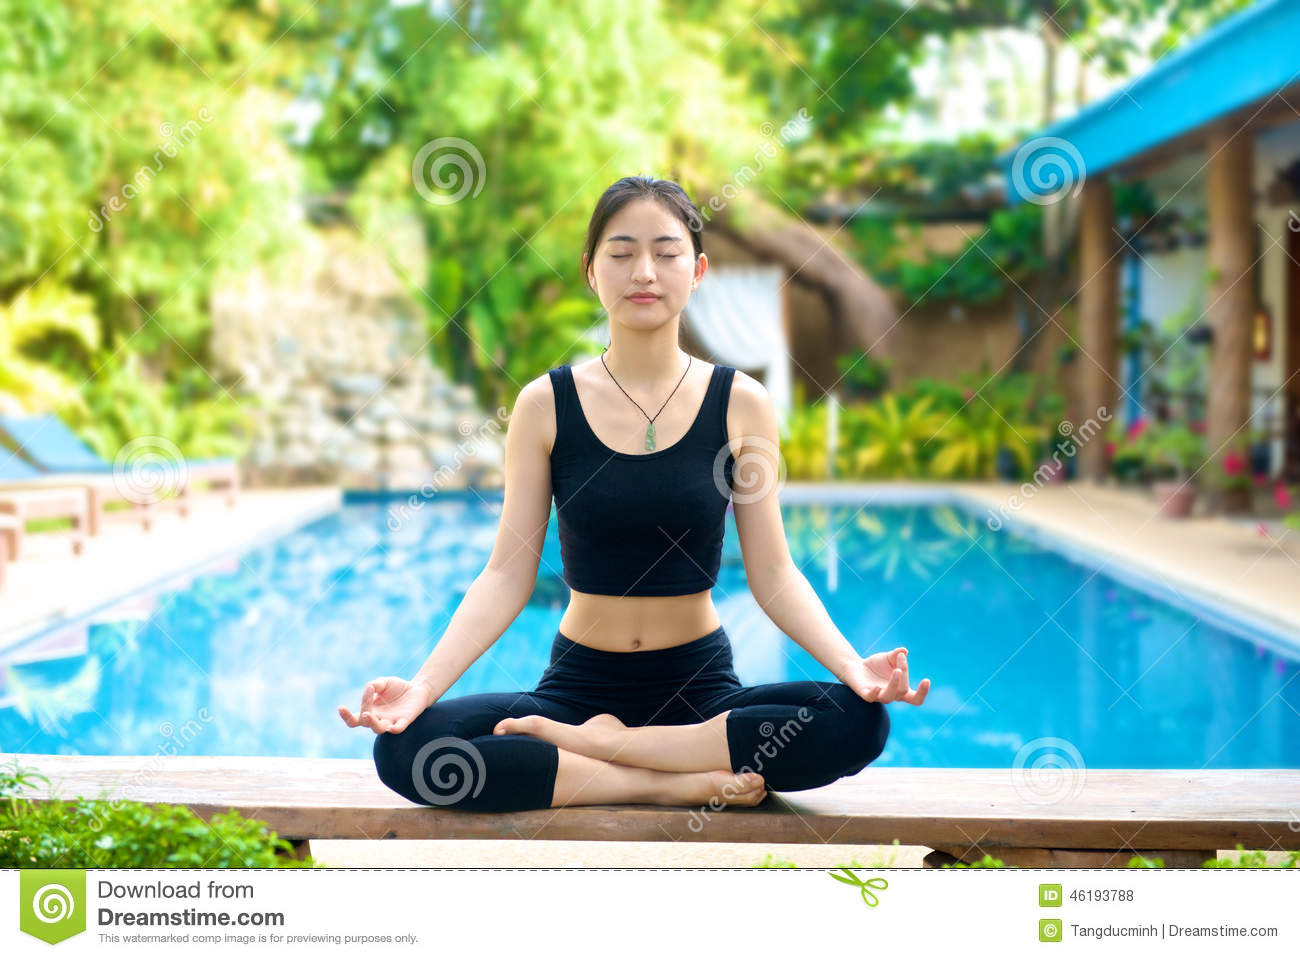 Asian Girl Practicing Yoga On A Bench Stock Photo Image 46193788